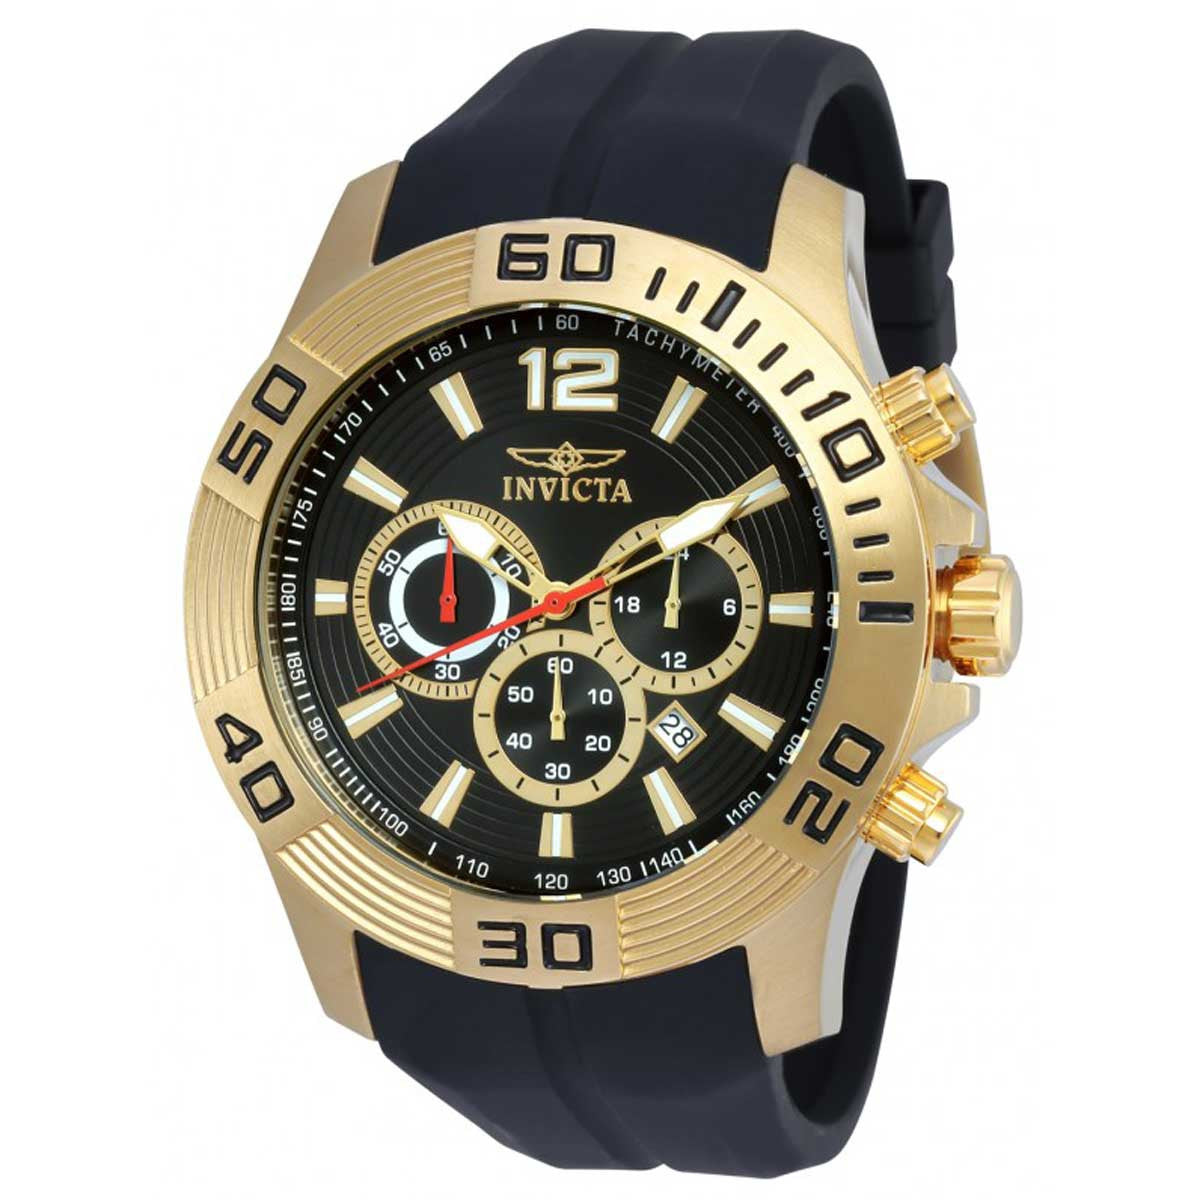 Invicta 20300 Gent's Black Dial Black Silicone Strap Chrono Watch 20300